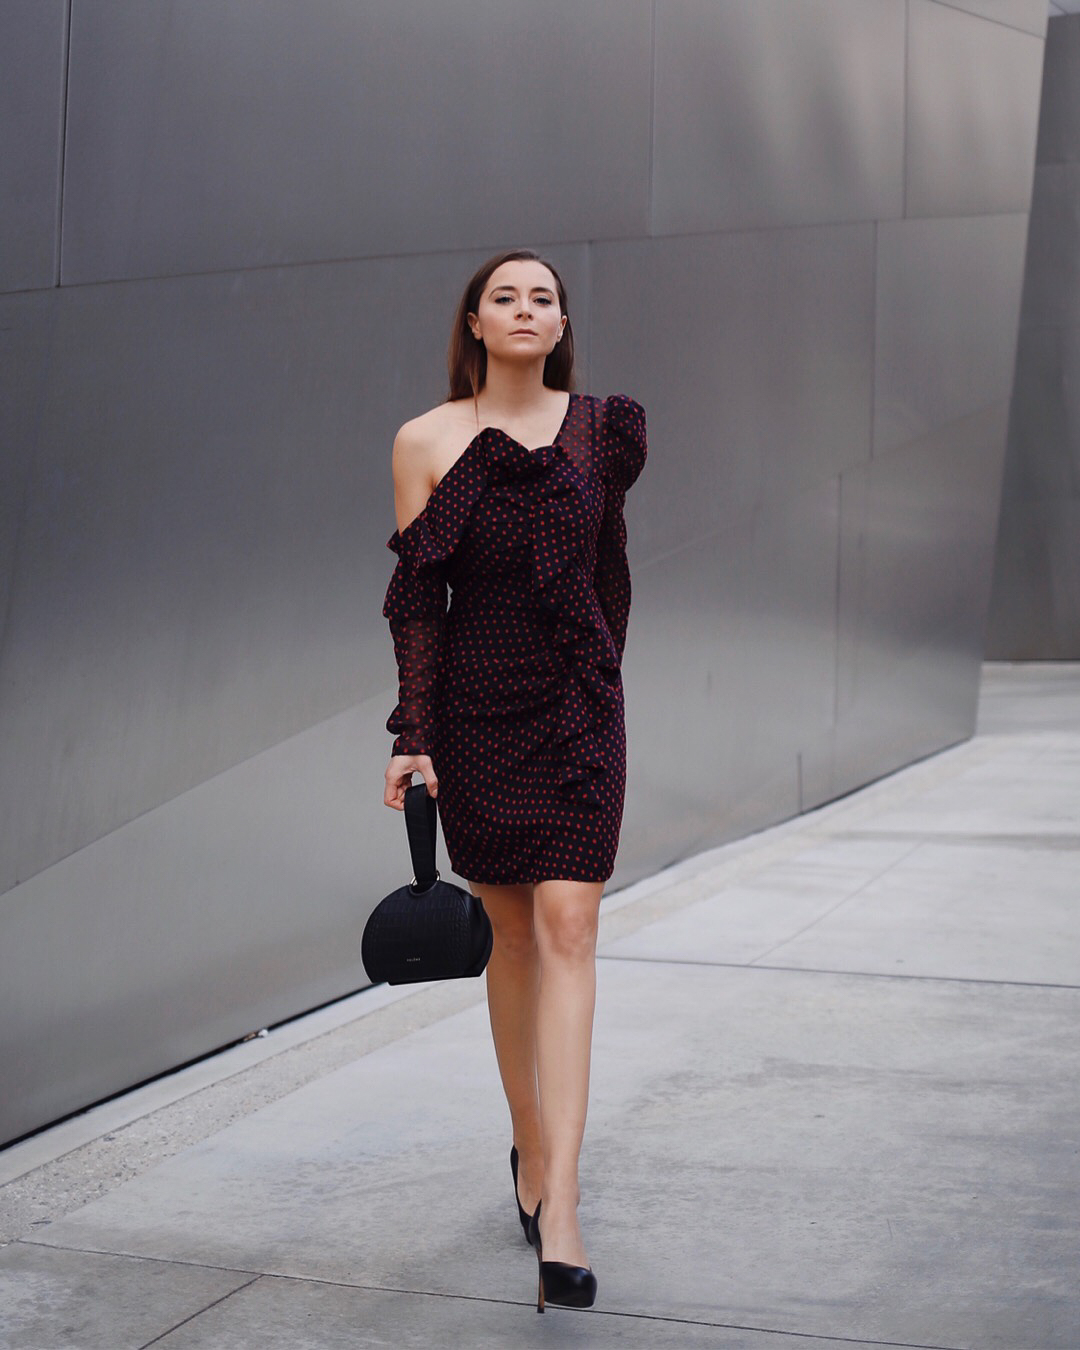 What to wear for the Holiday Party - Holiday Party dresses on ModeRsvp.com. The polka dots structure one shoulder dress by Mr. Self Portrait